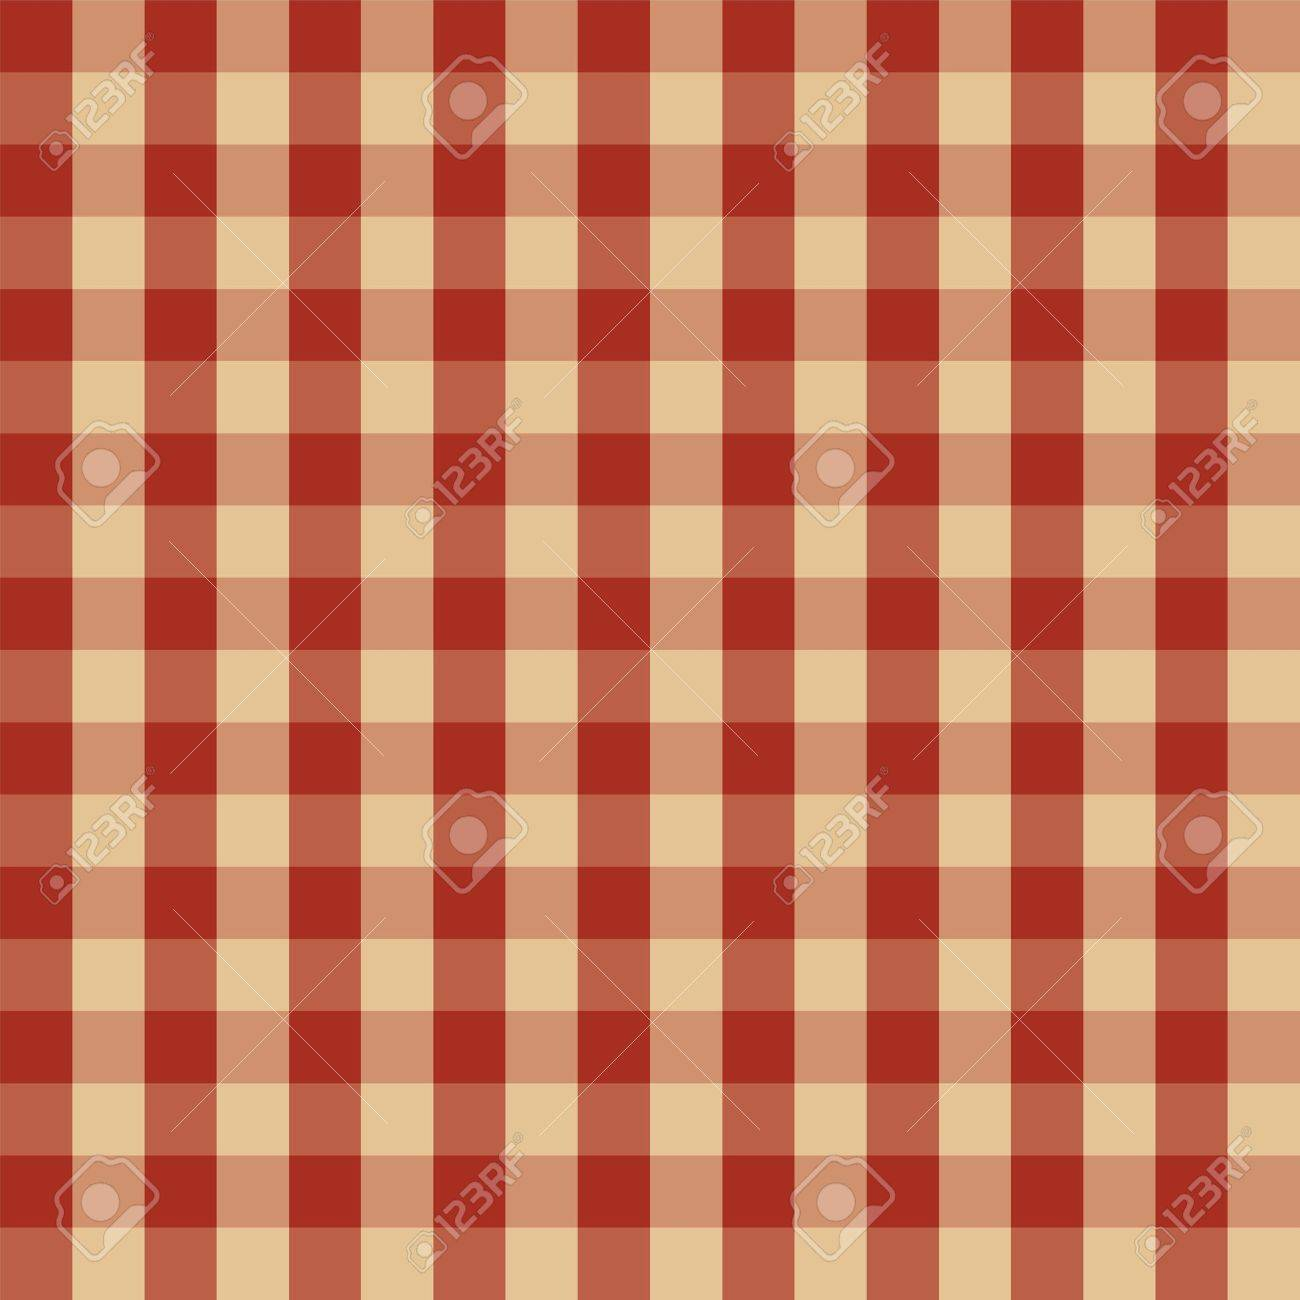 Checkered picnic tablecloth  Seamless pattern Stock Vector - 16731639